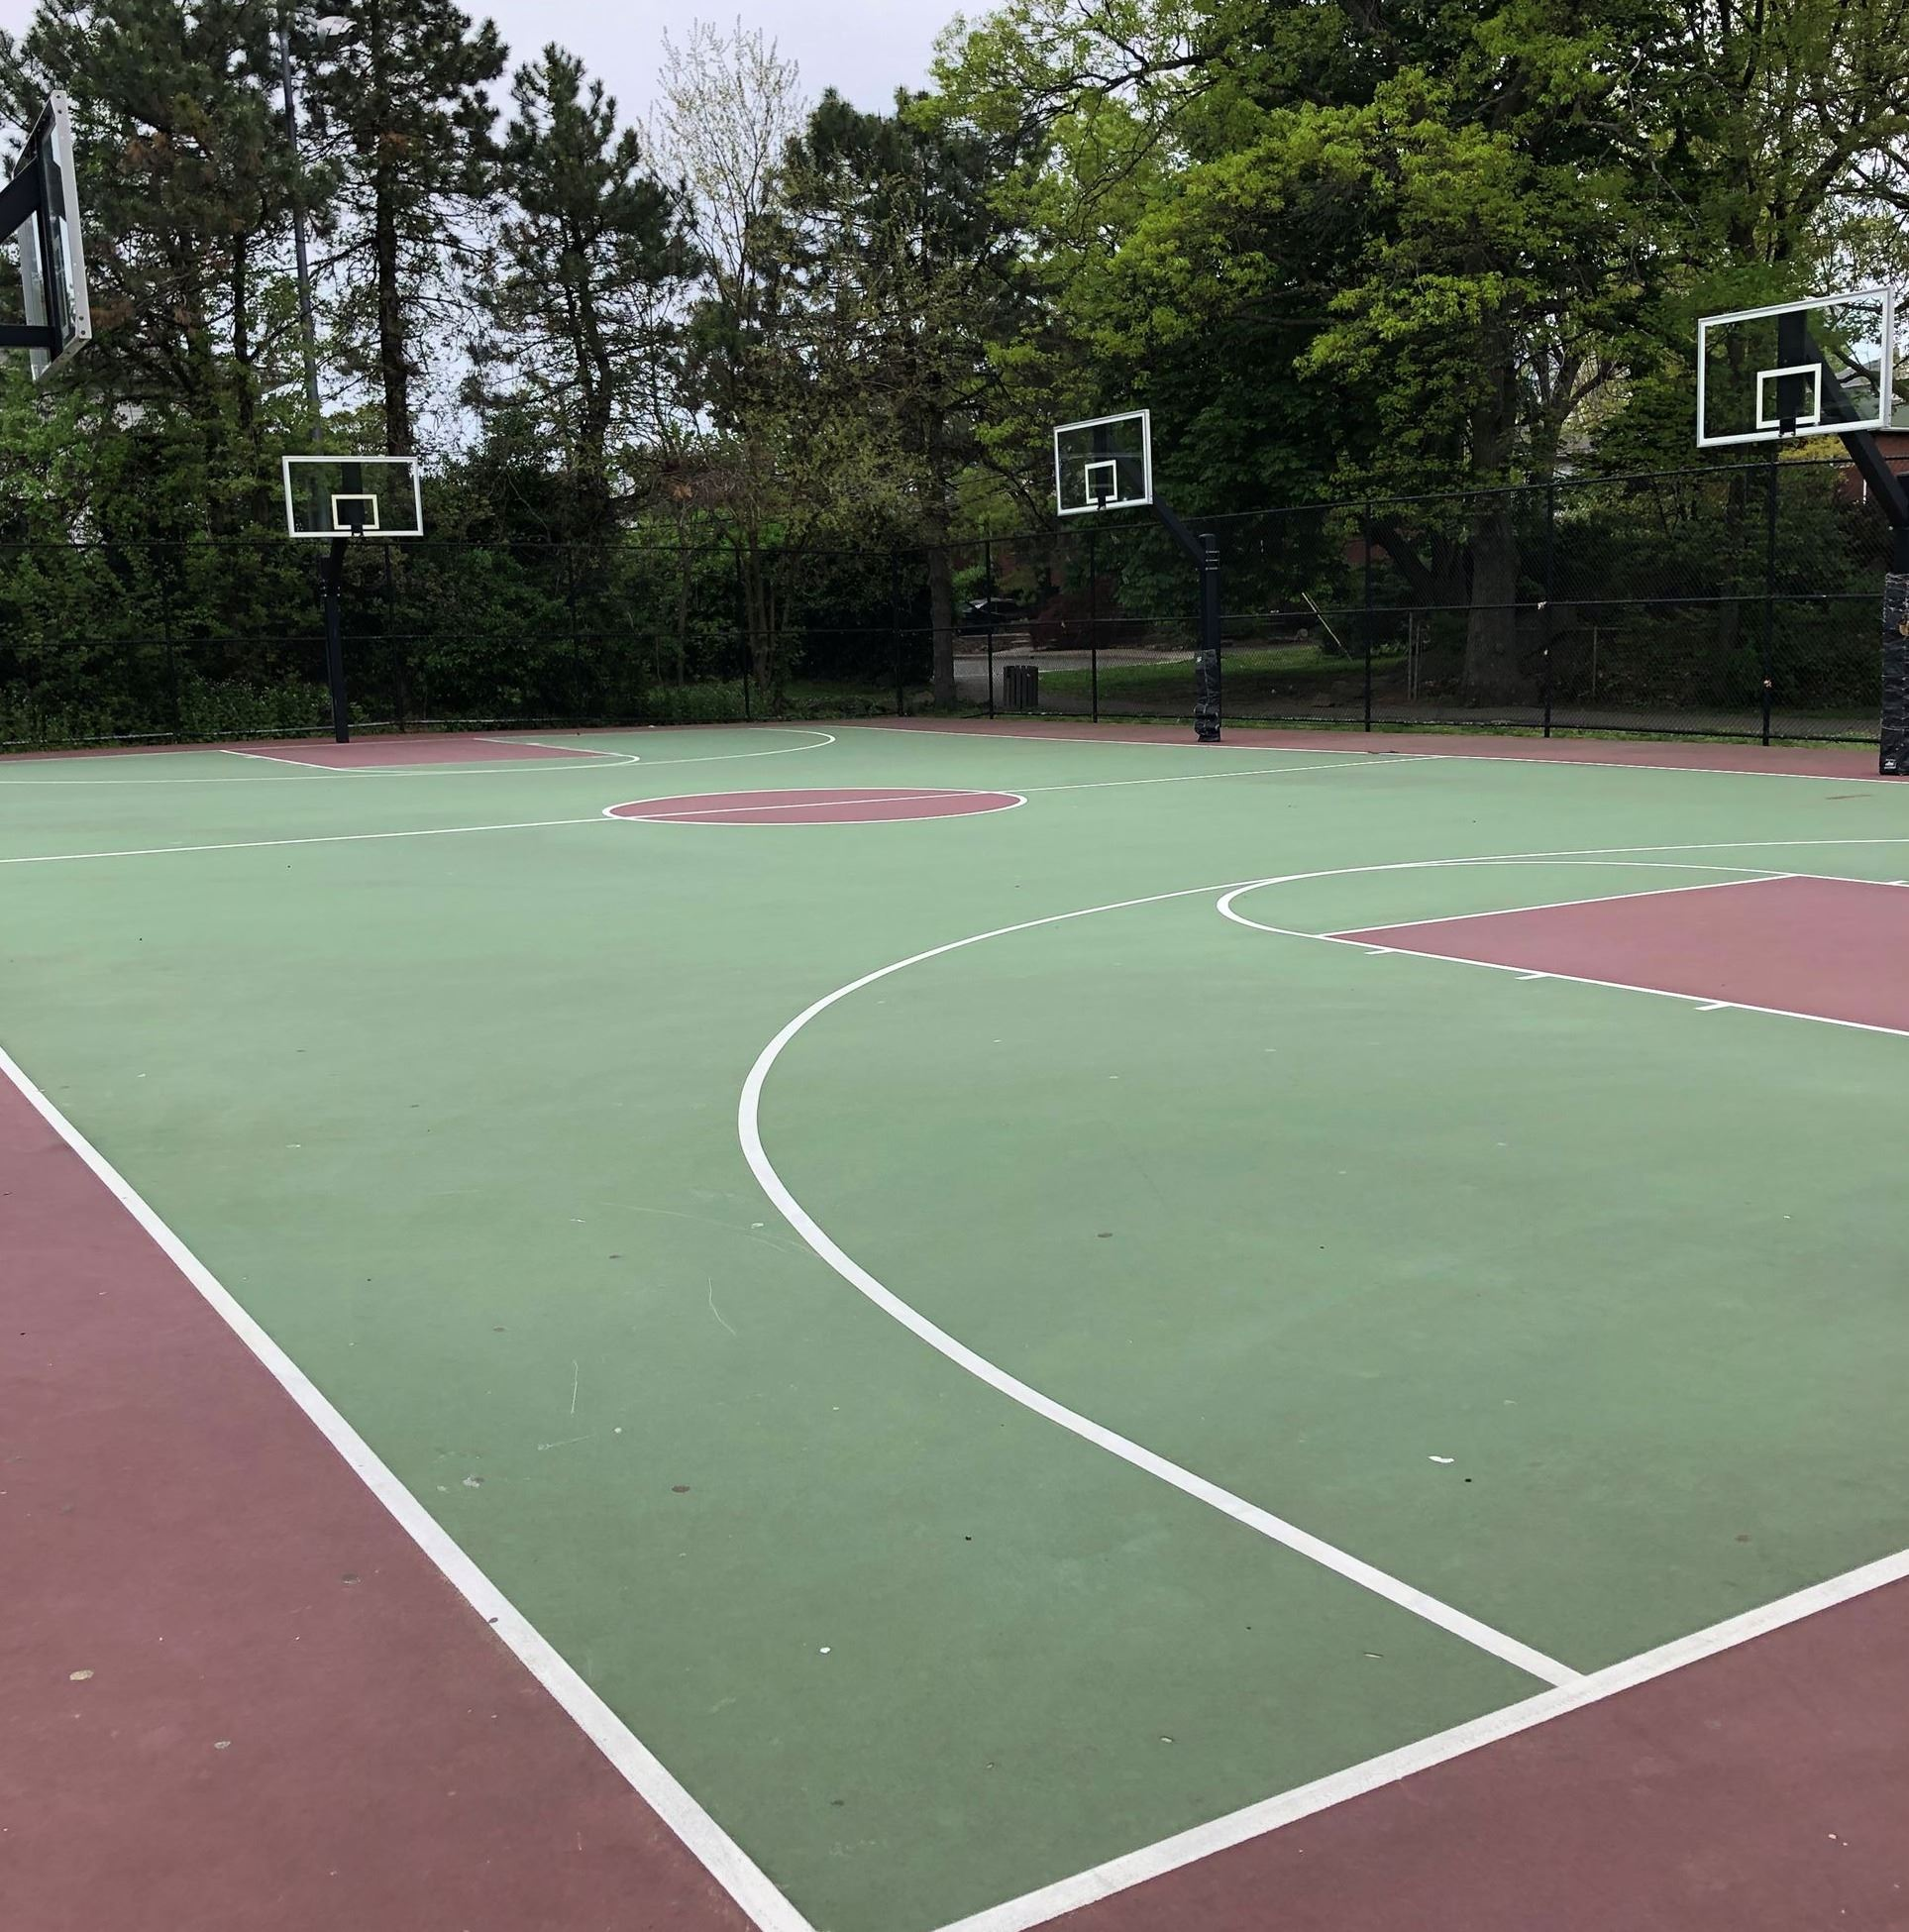 Basketball Court Opens in new window